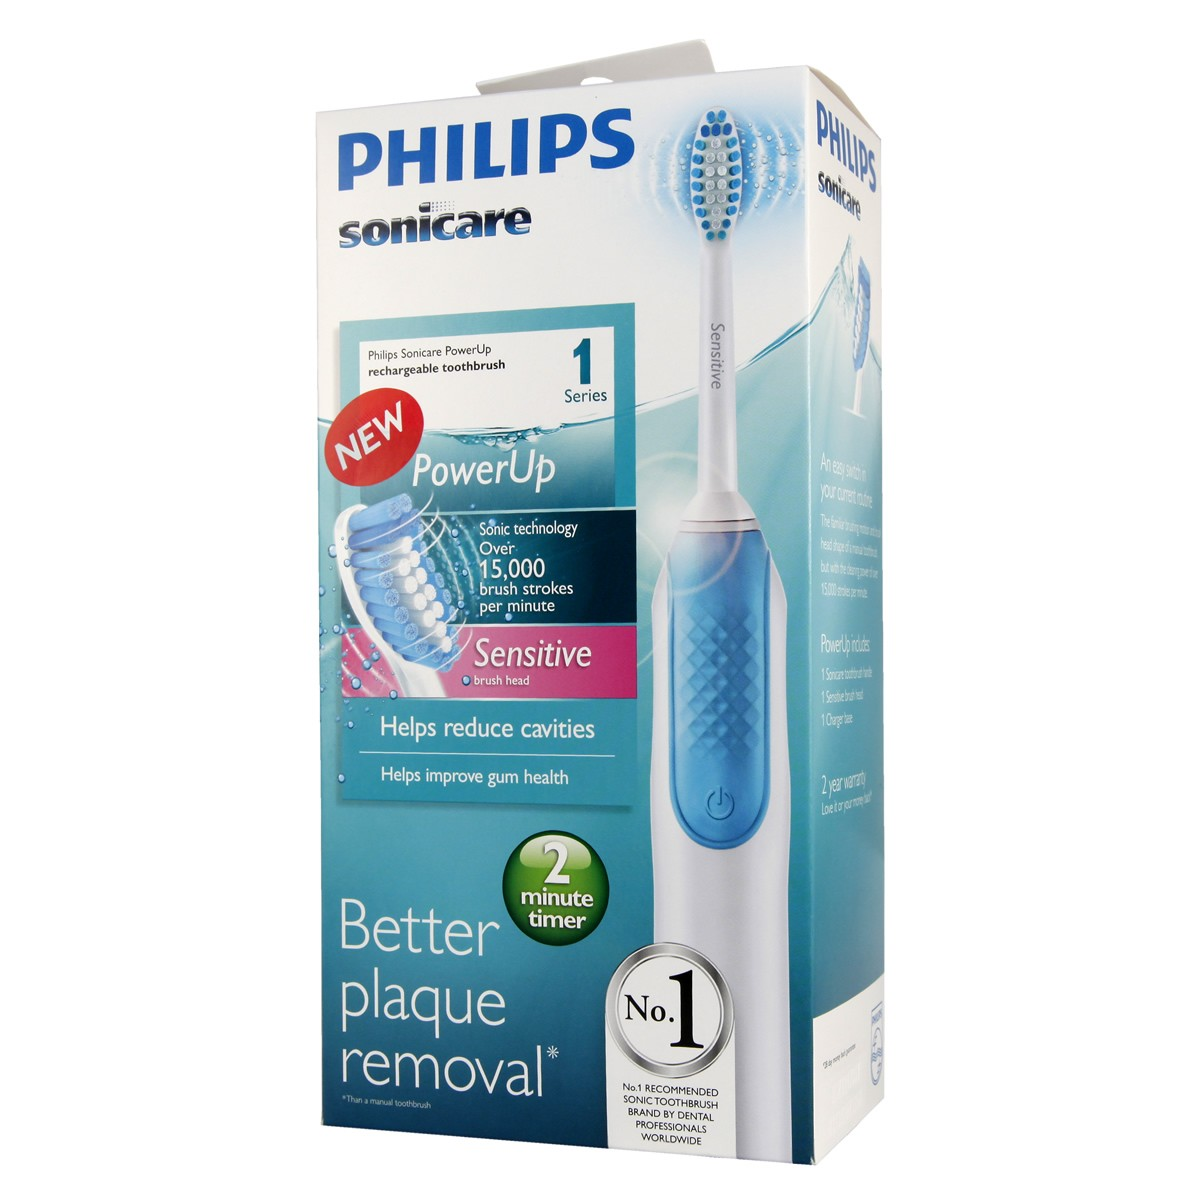 Philips Sonicare Power Up Rechargeable Toothbrush - Sensitive Brush Heads